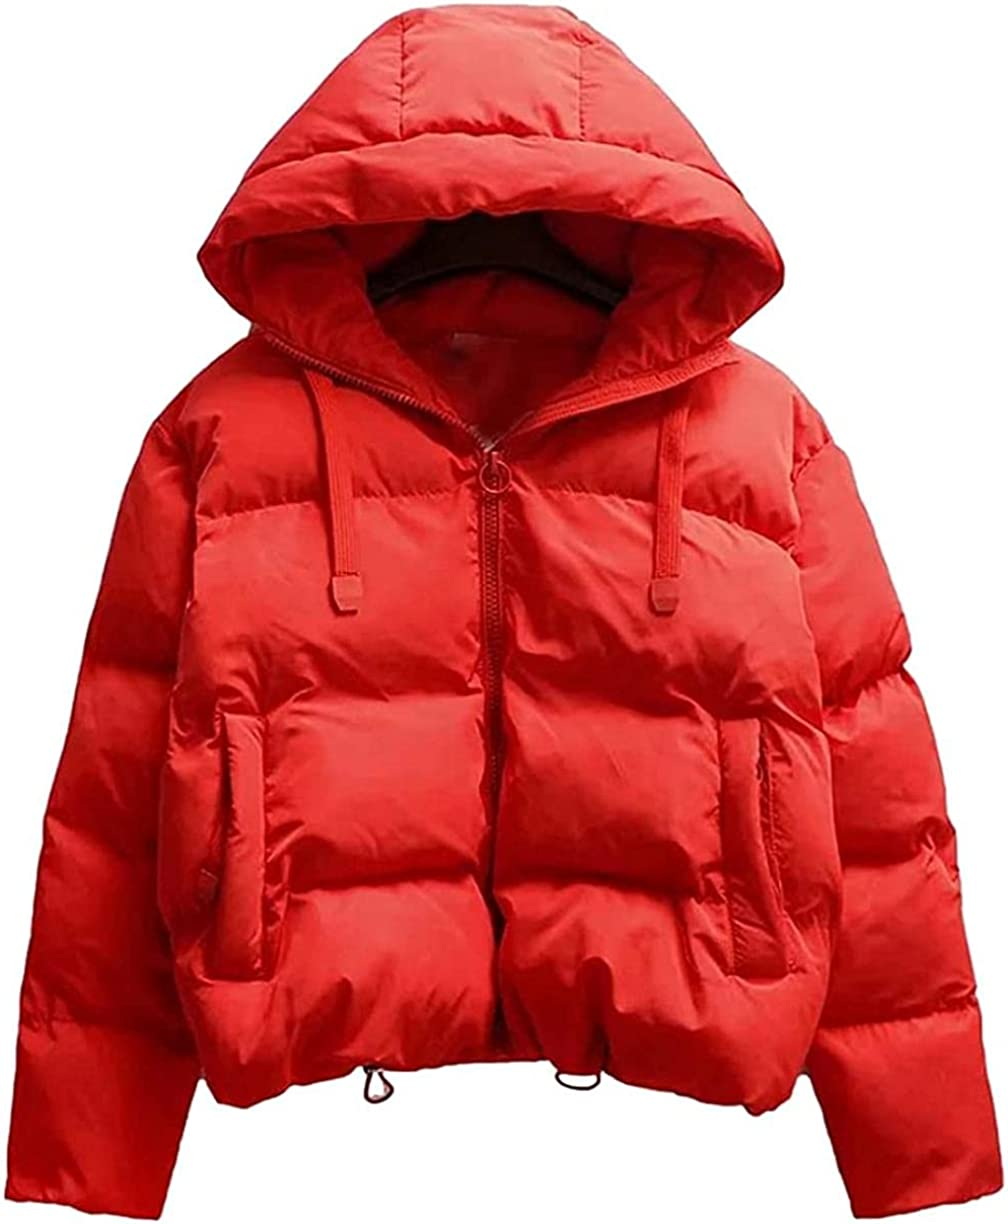 Women's Hooded Down Jacket Thick Warm Zip Down Quilted Coats with Pocket